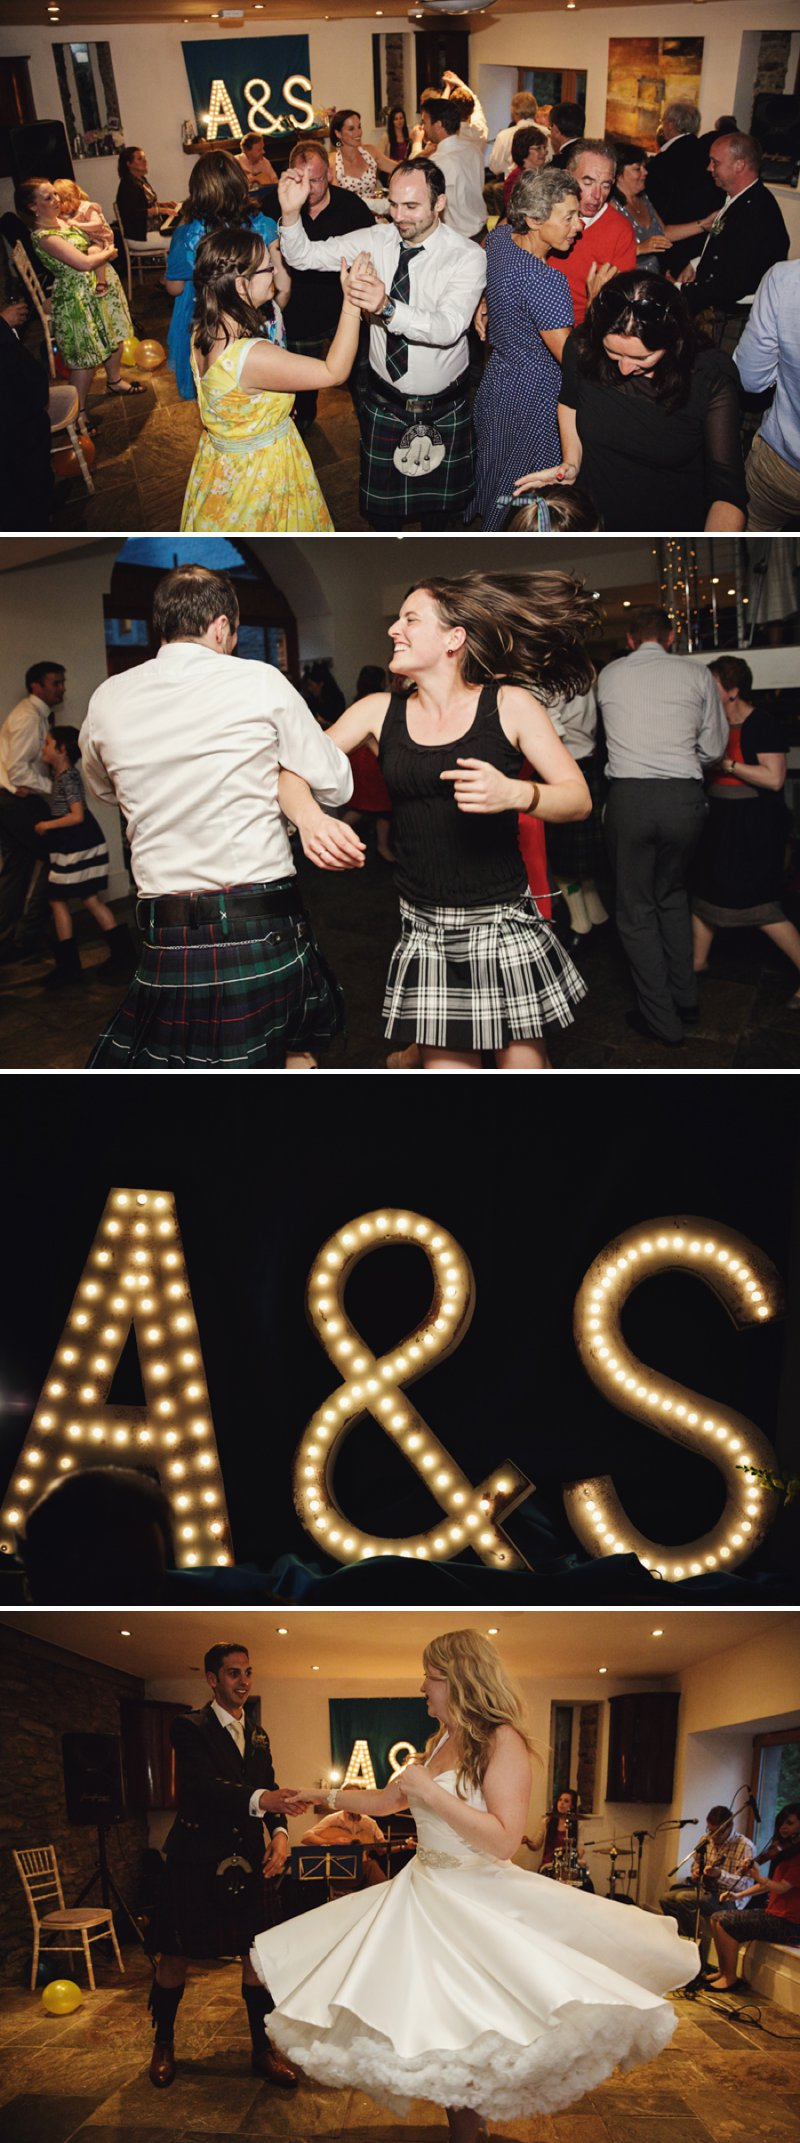 Rustic Scottish Beach Wedding With Bride In Justin Alexander And Vivien Of Holloway And Groom In Kilt With Bridesmaids In 50s Style Gowns With A Traditional Scottish Ceilidh 13